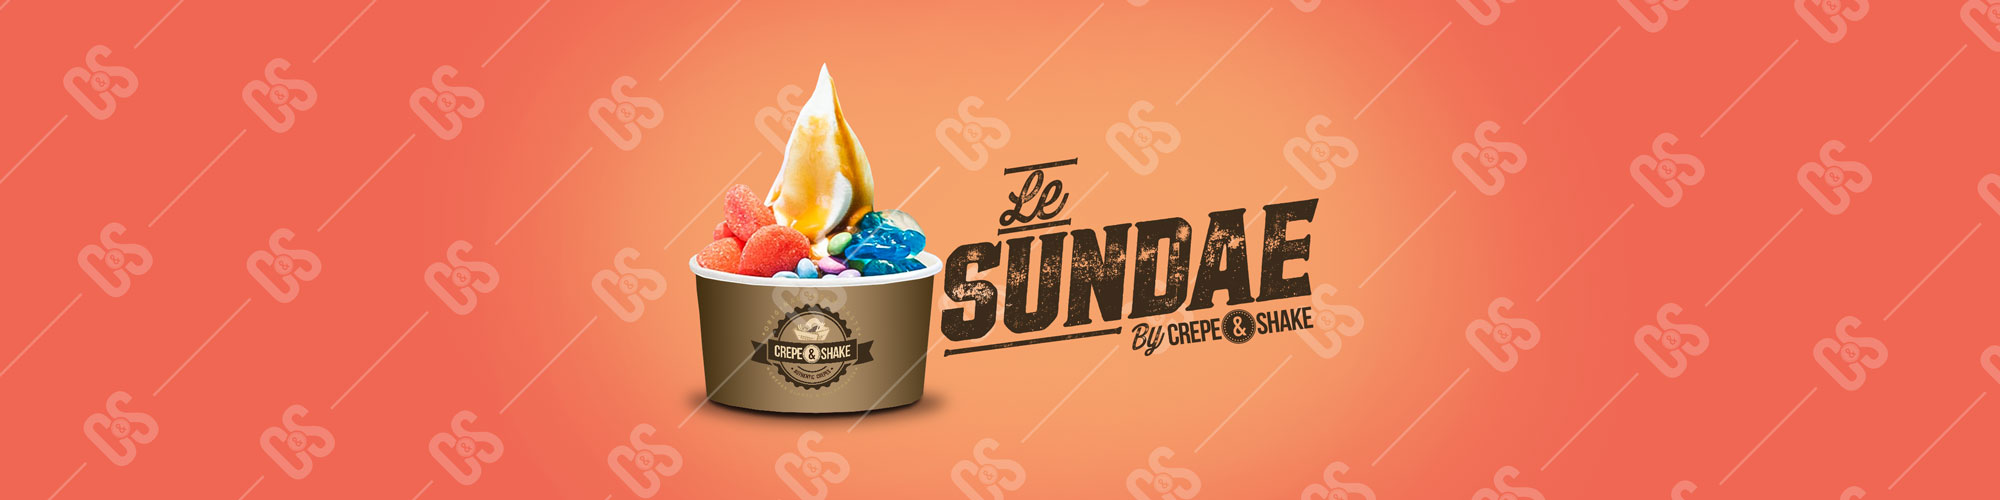 Le Sunday By C&S